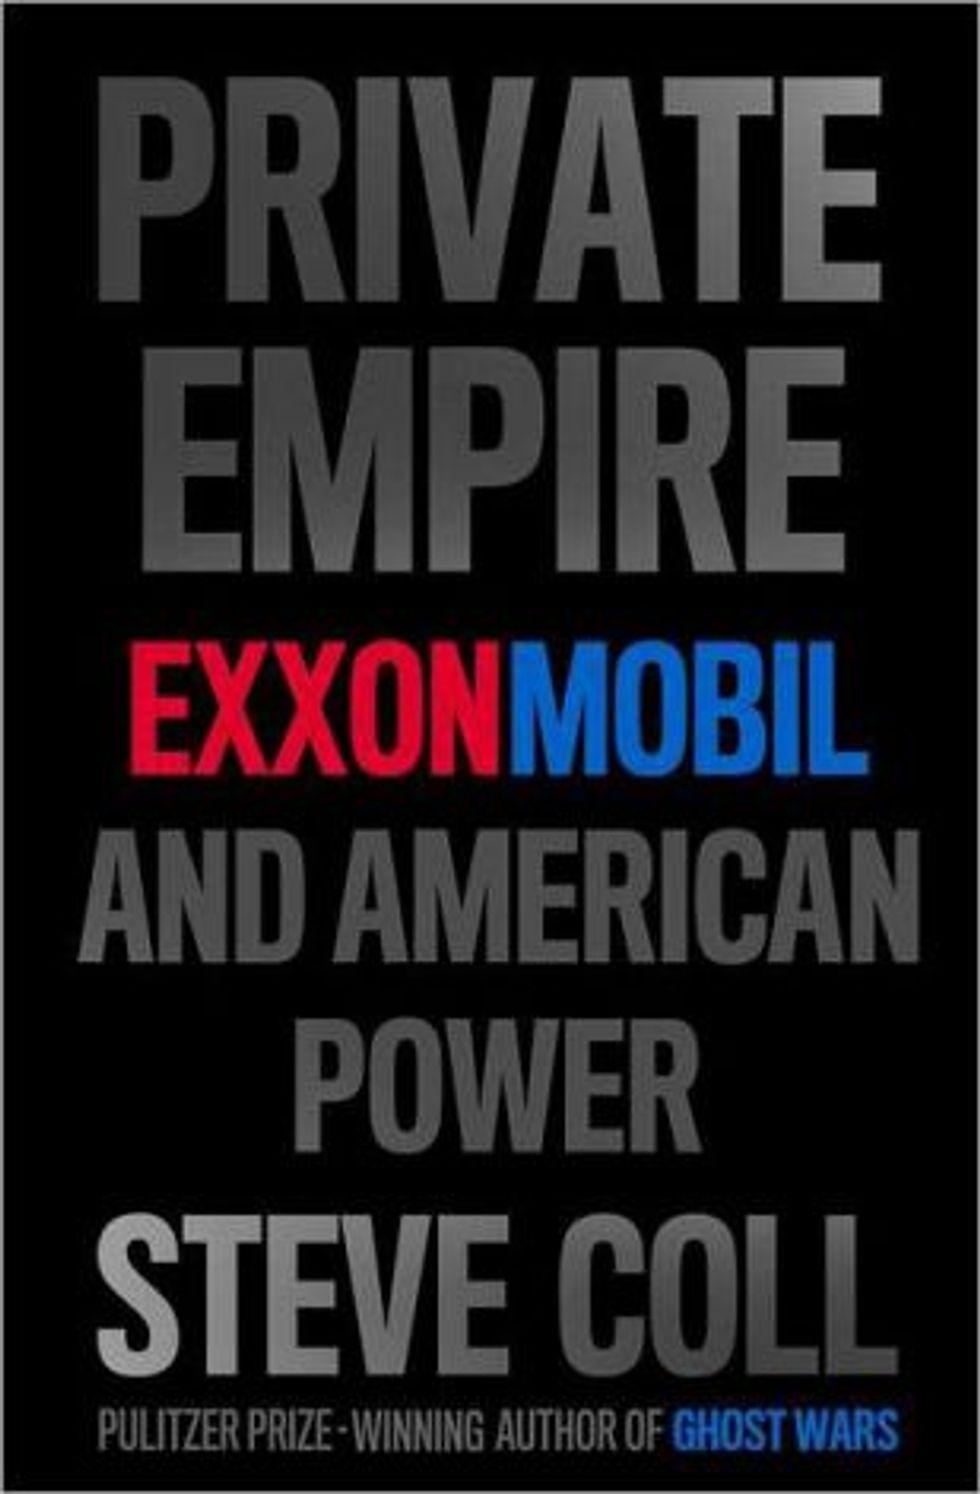 Would Exxon Mobil Support a Carbon Tax to Combat Climate Change?